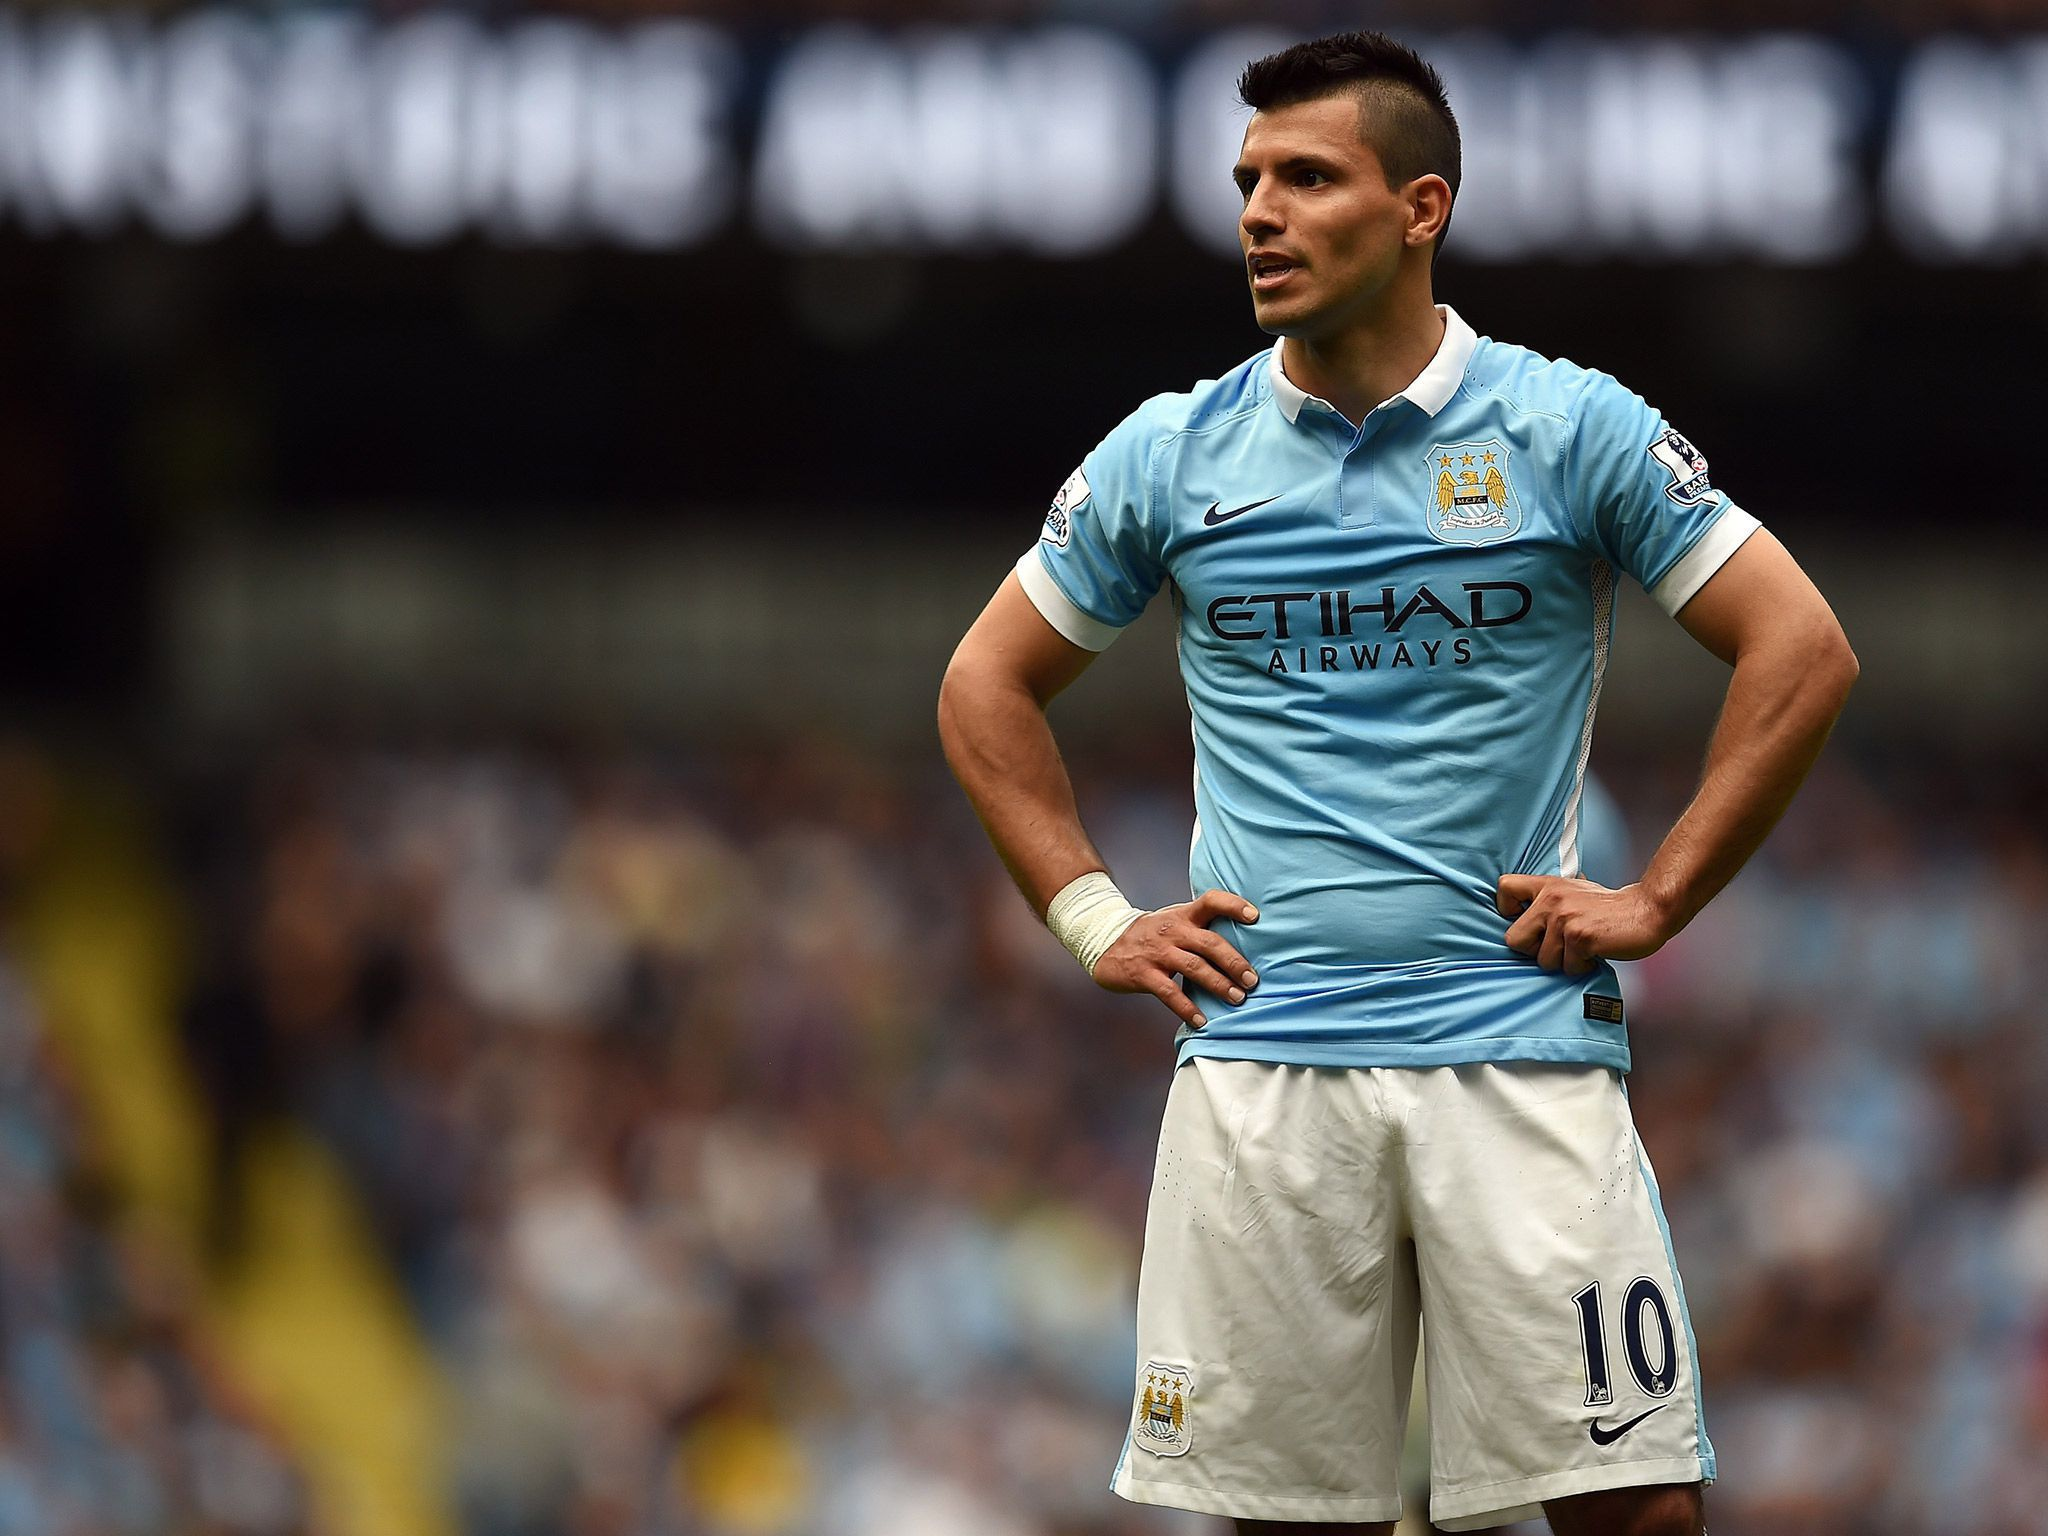 Sergio Aguero 651615 Wallpapers High Quality: Sergio Aguero Wallpapers Images Photos Pictures Backgrounds